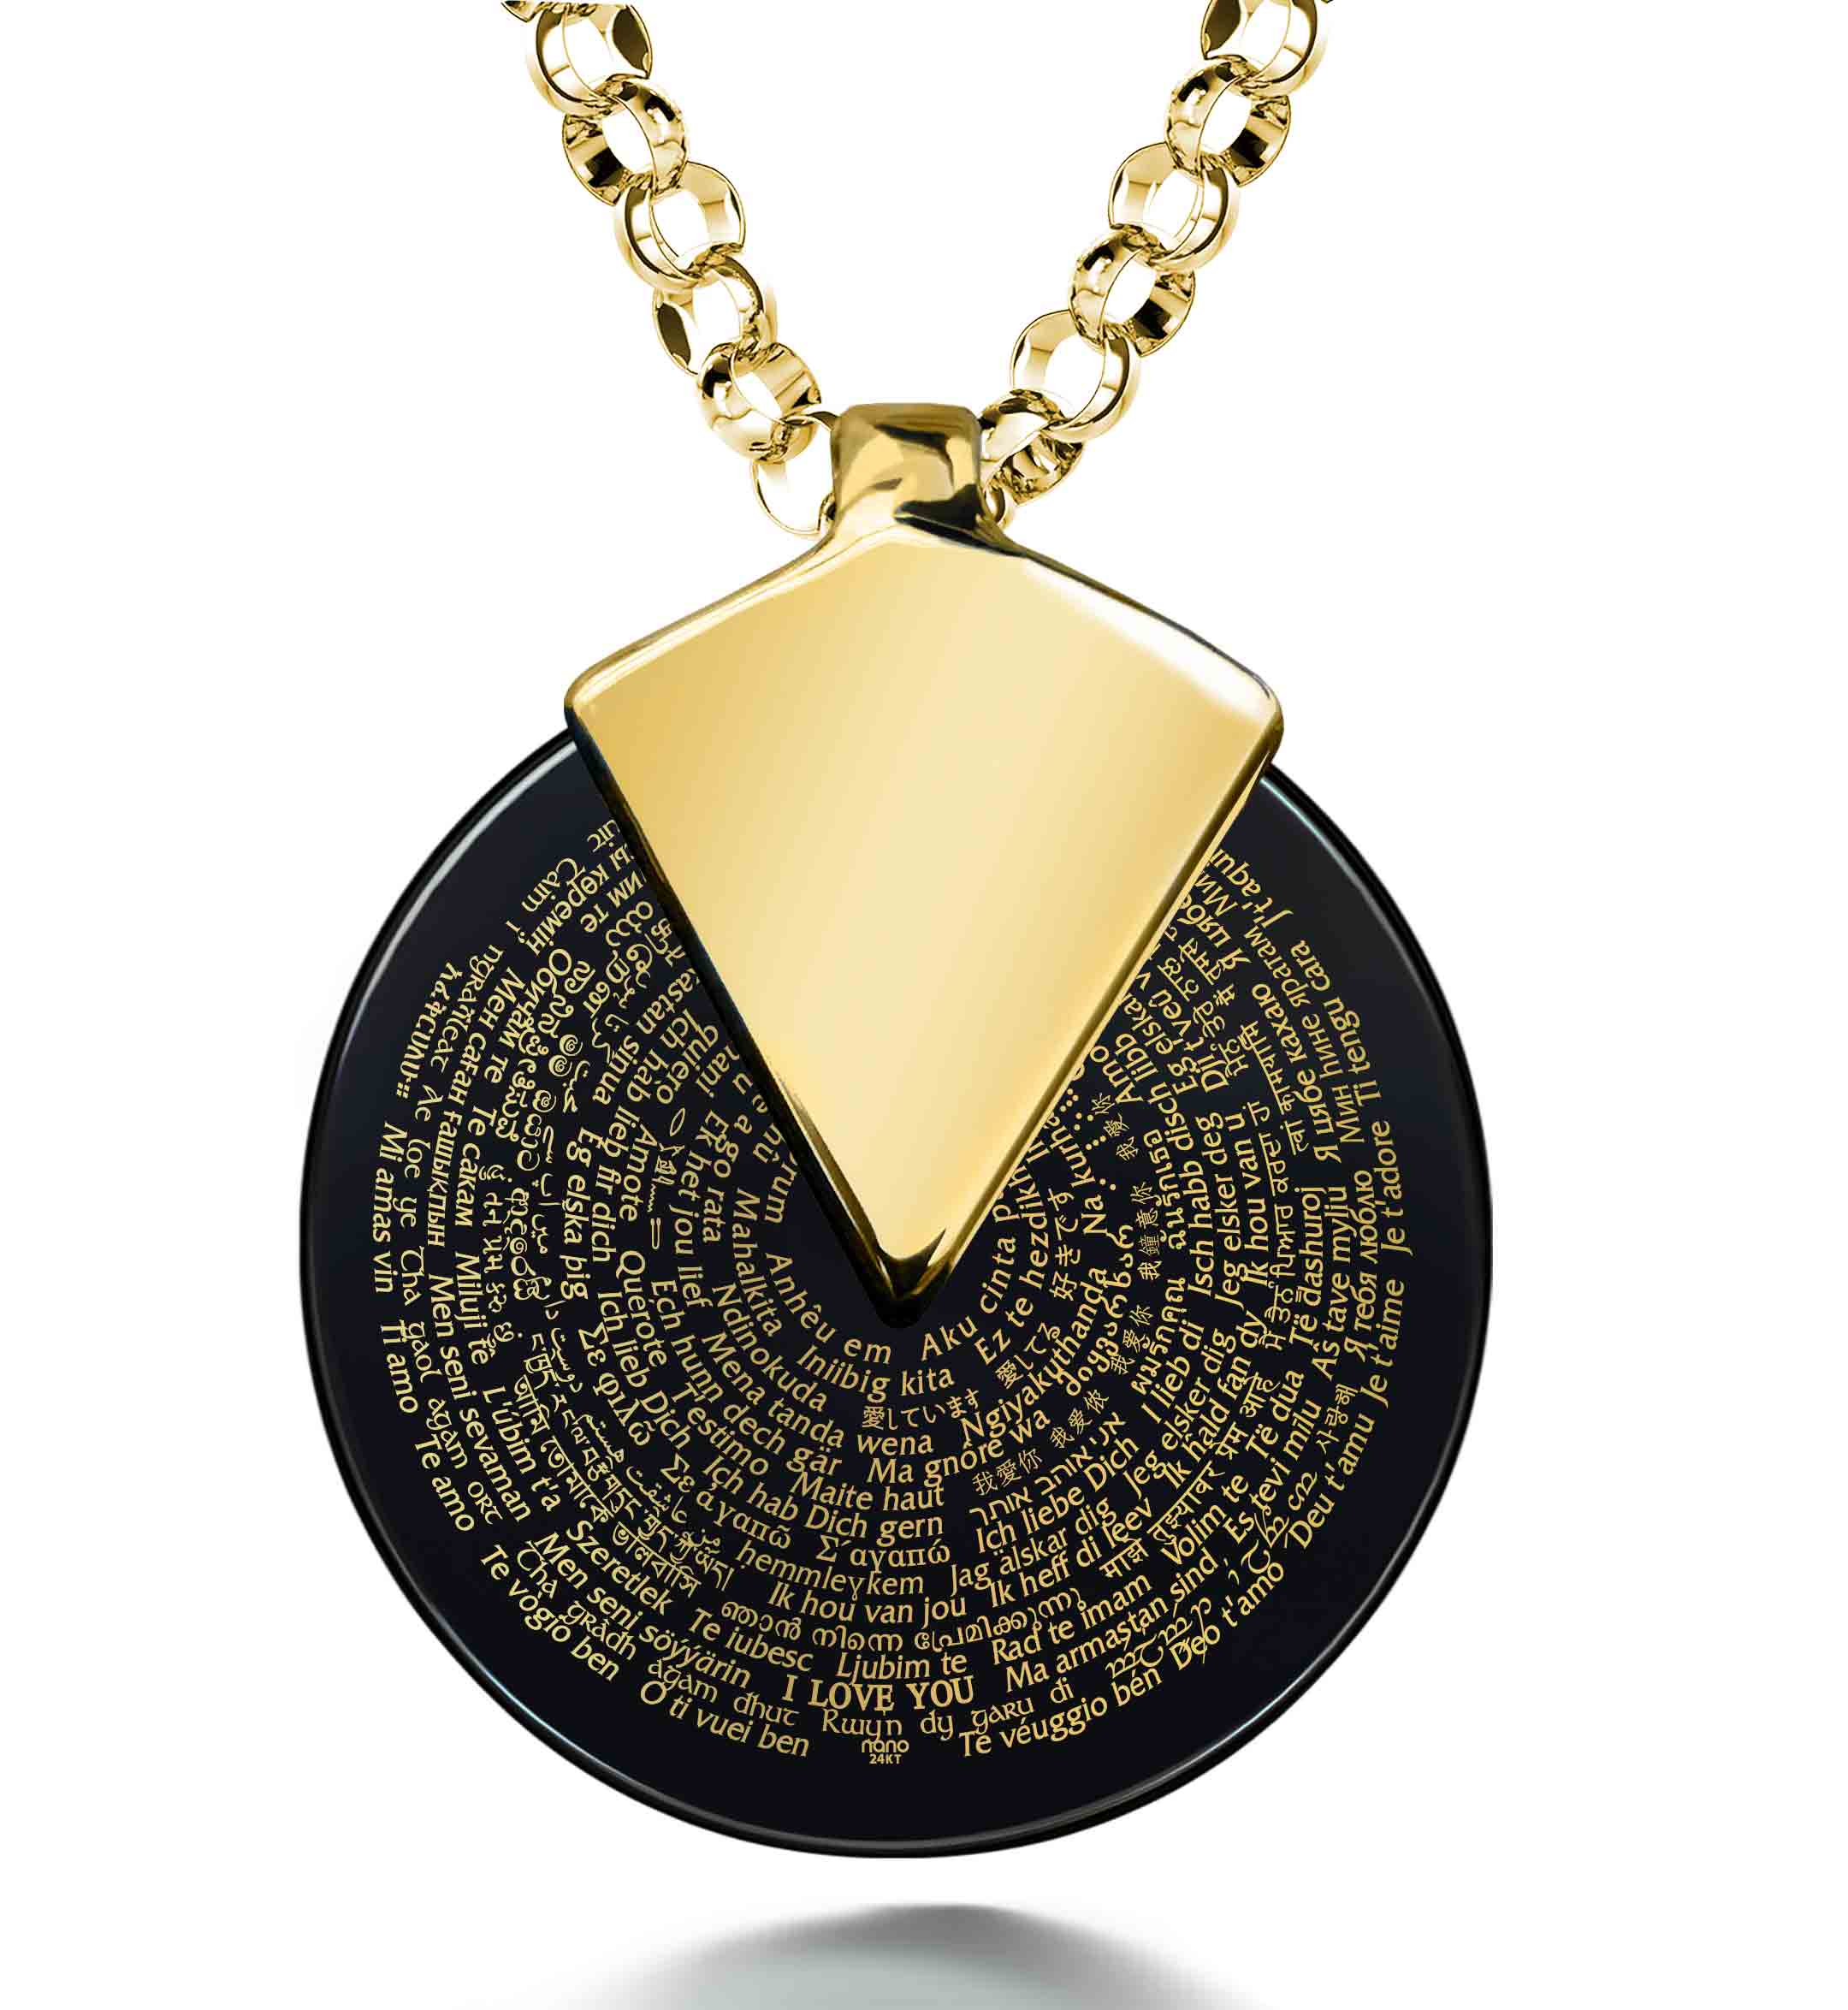 Best Valentines Day Ideas for Her - Love Necklaces in All Languages - Nano Jewelry